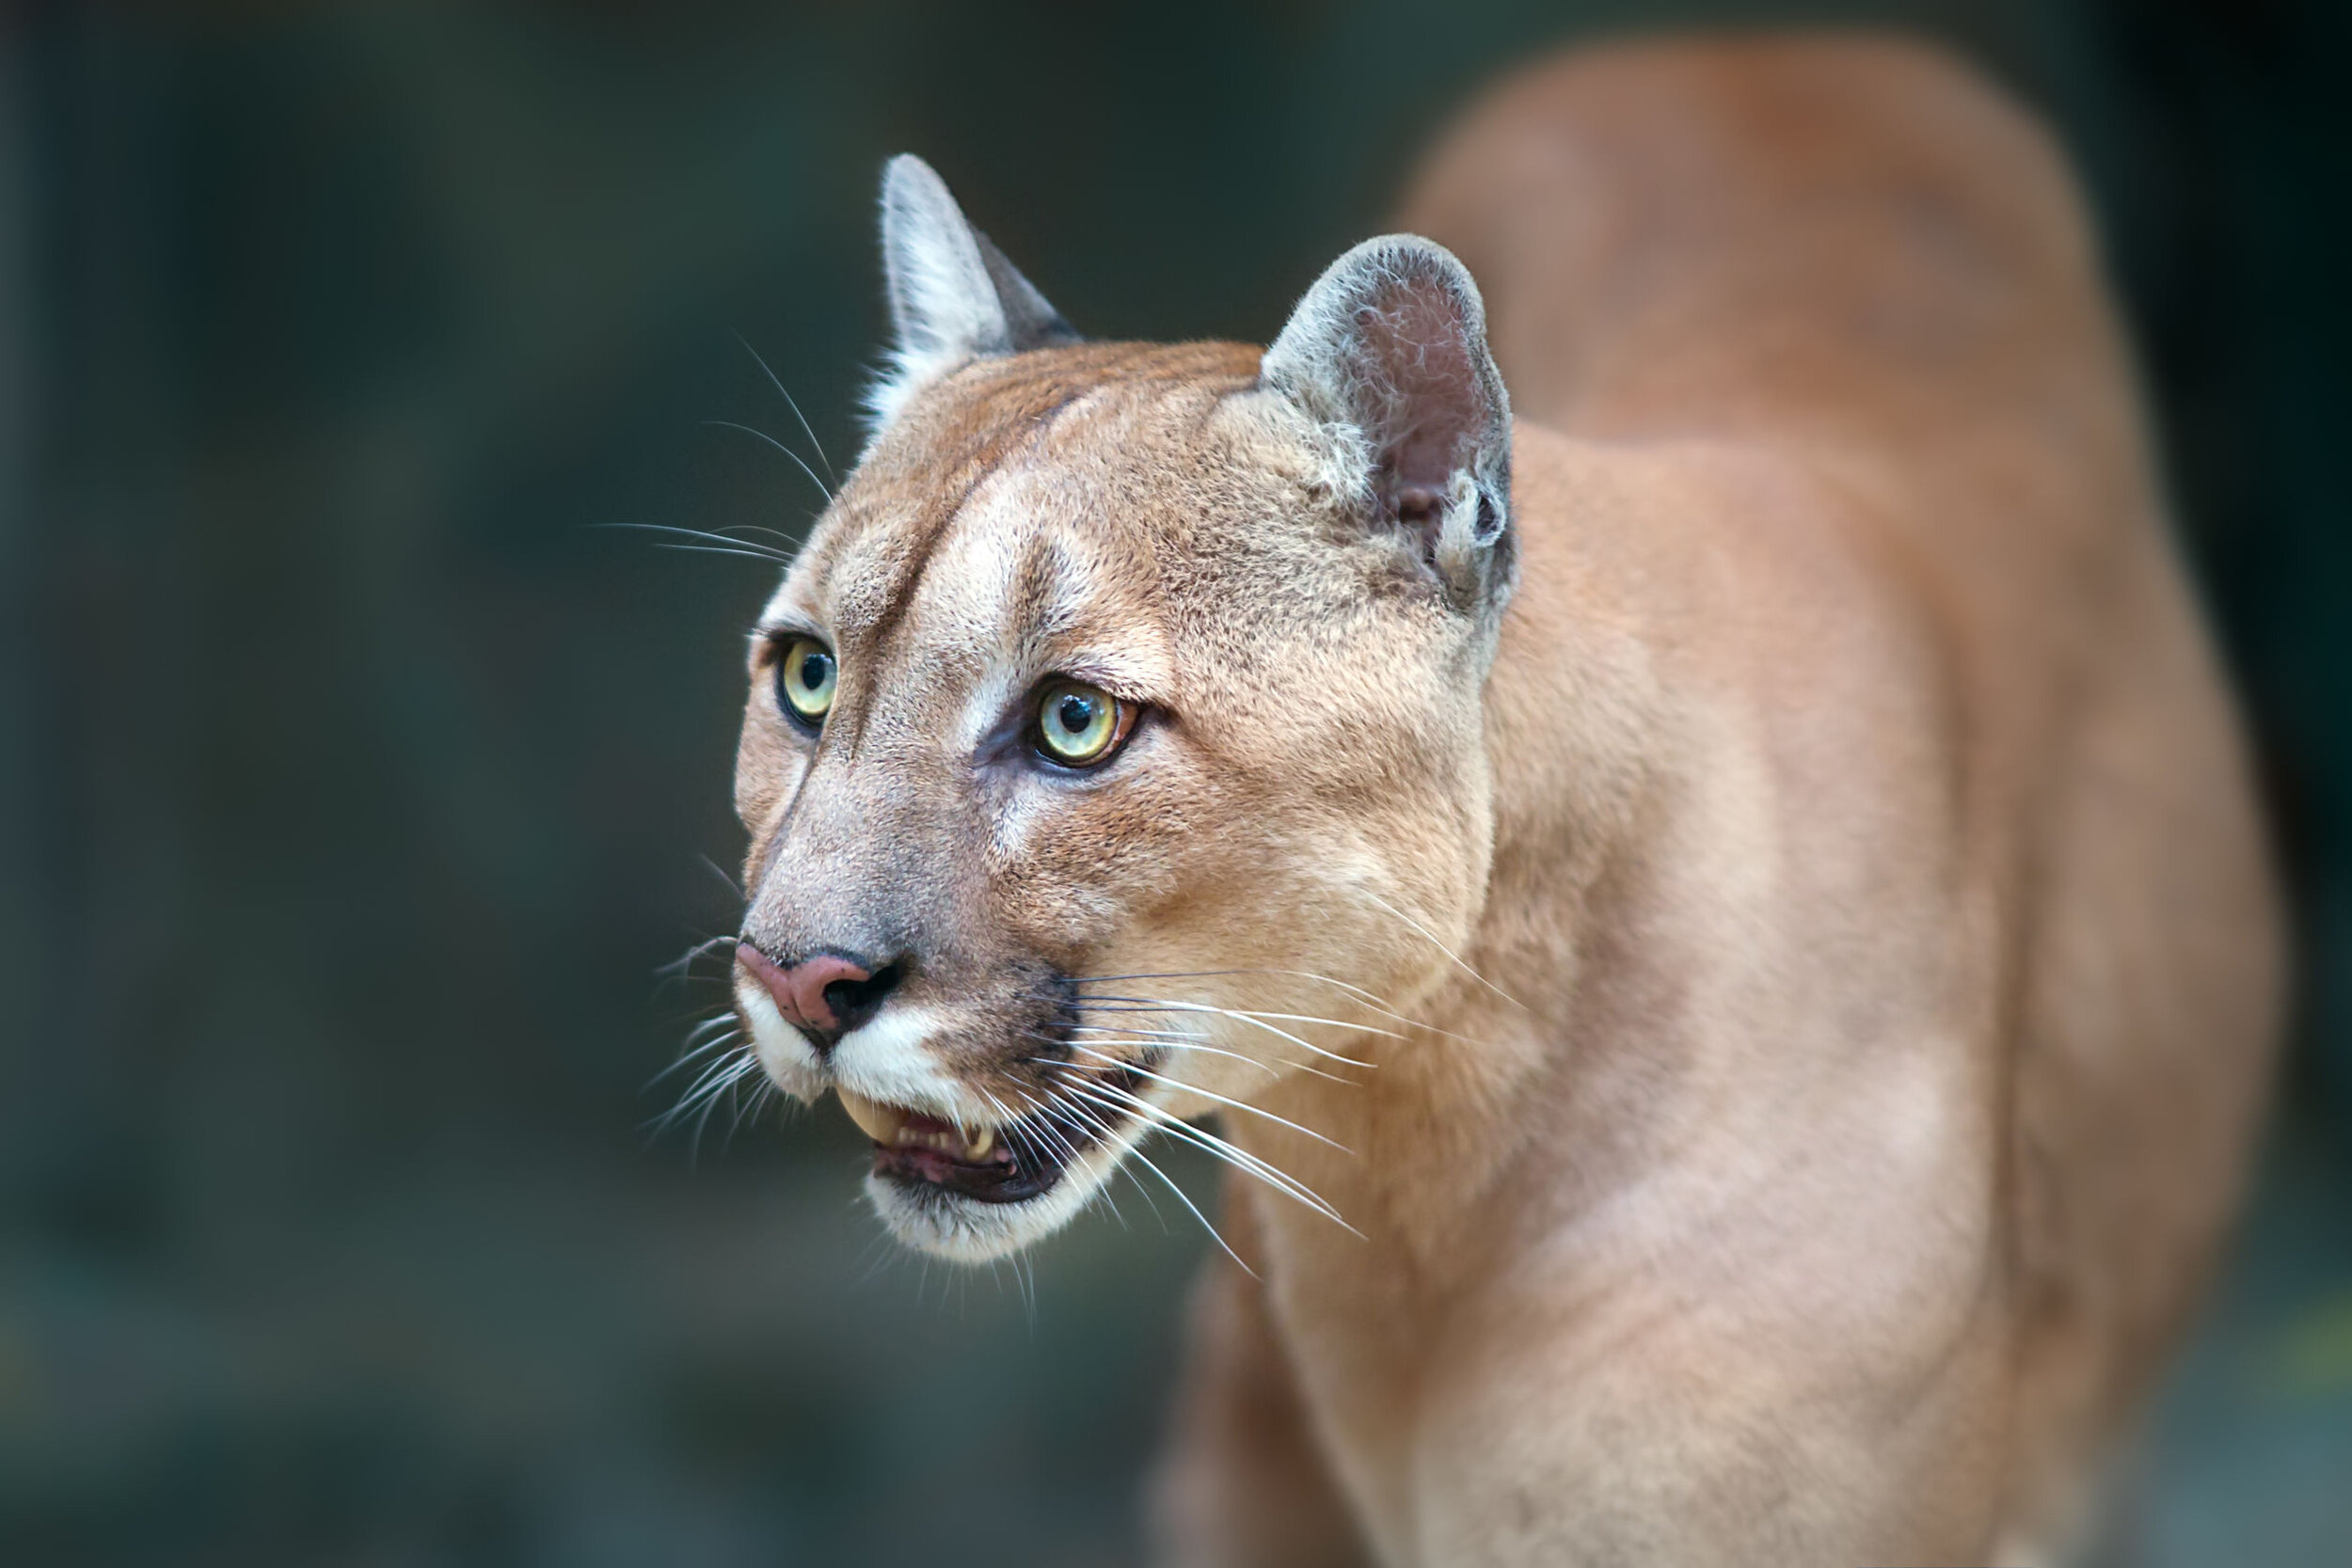 11: Cougars are the biggest cats who purr and meow.  https://youtu.be/BXhfZRE08ko